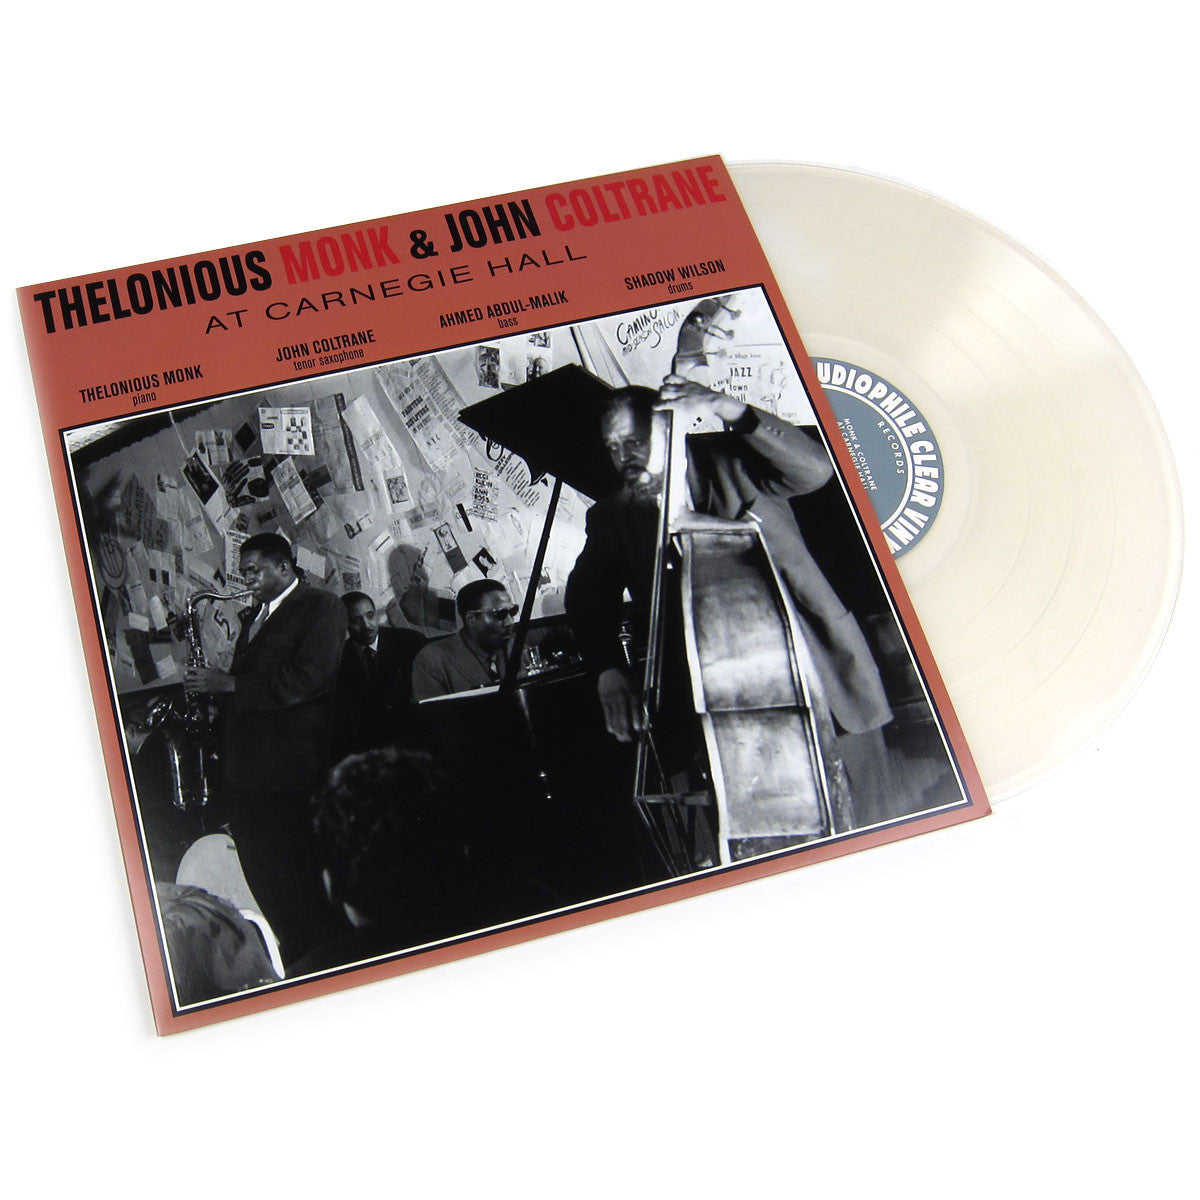 Thelonious Monk & John Coltrane: At Carnegie Hall (Audiophile Clear Vinyl) ACV Vinyl LP